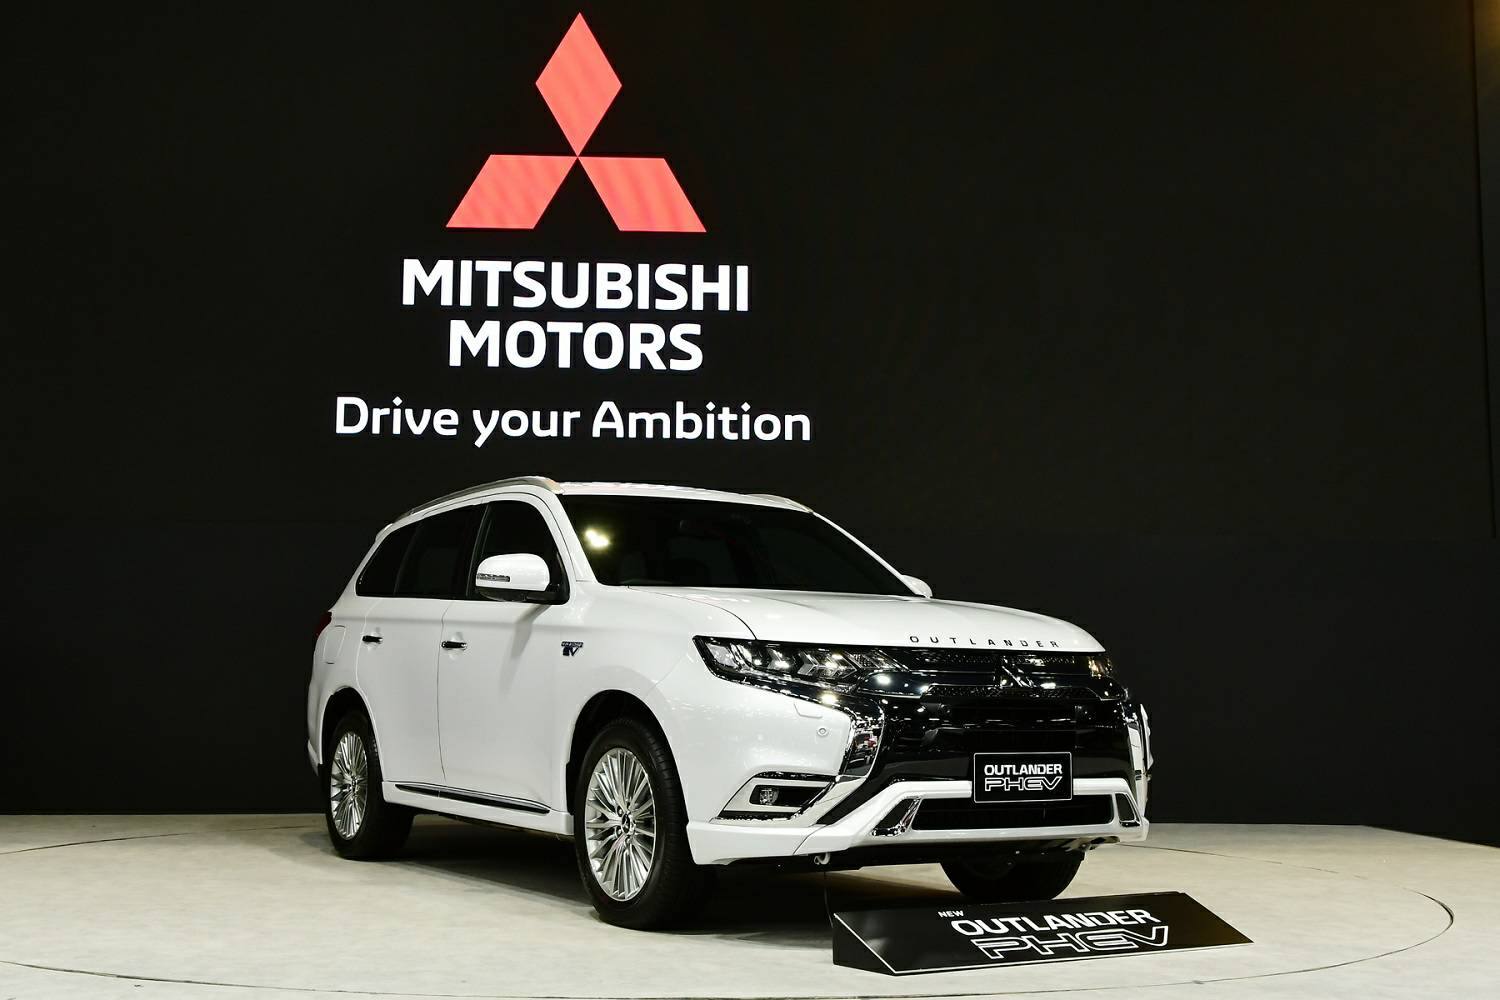 Mitsubishi to benefit from EV growth with Outlander PHEV